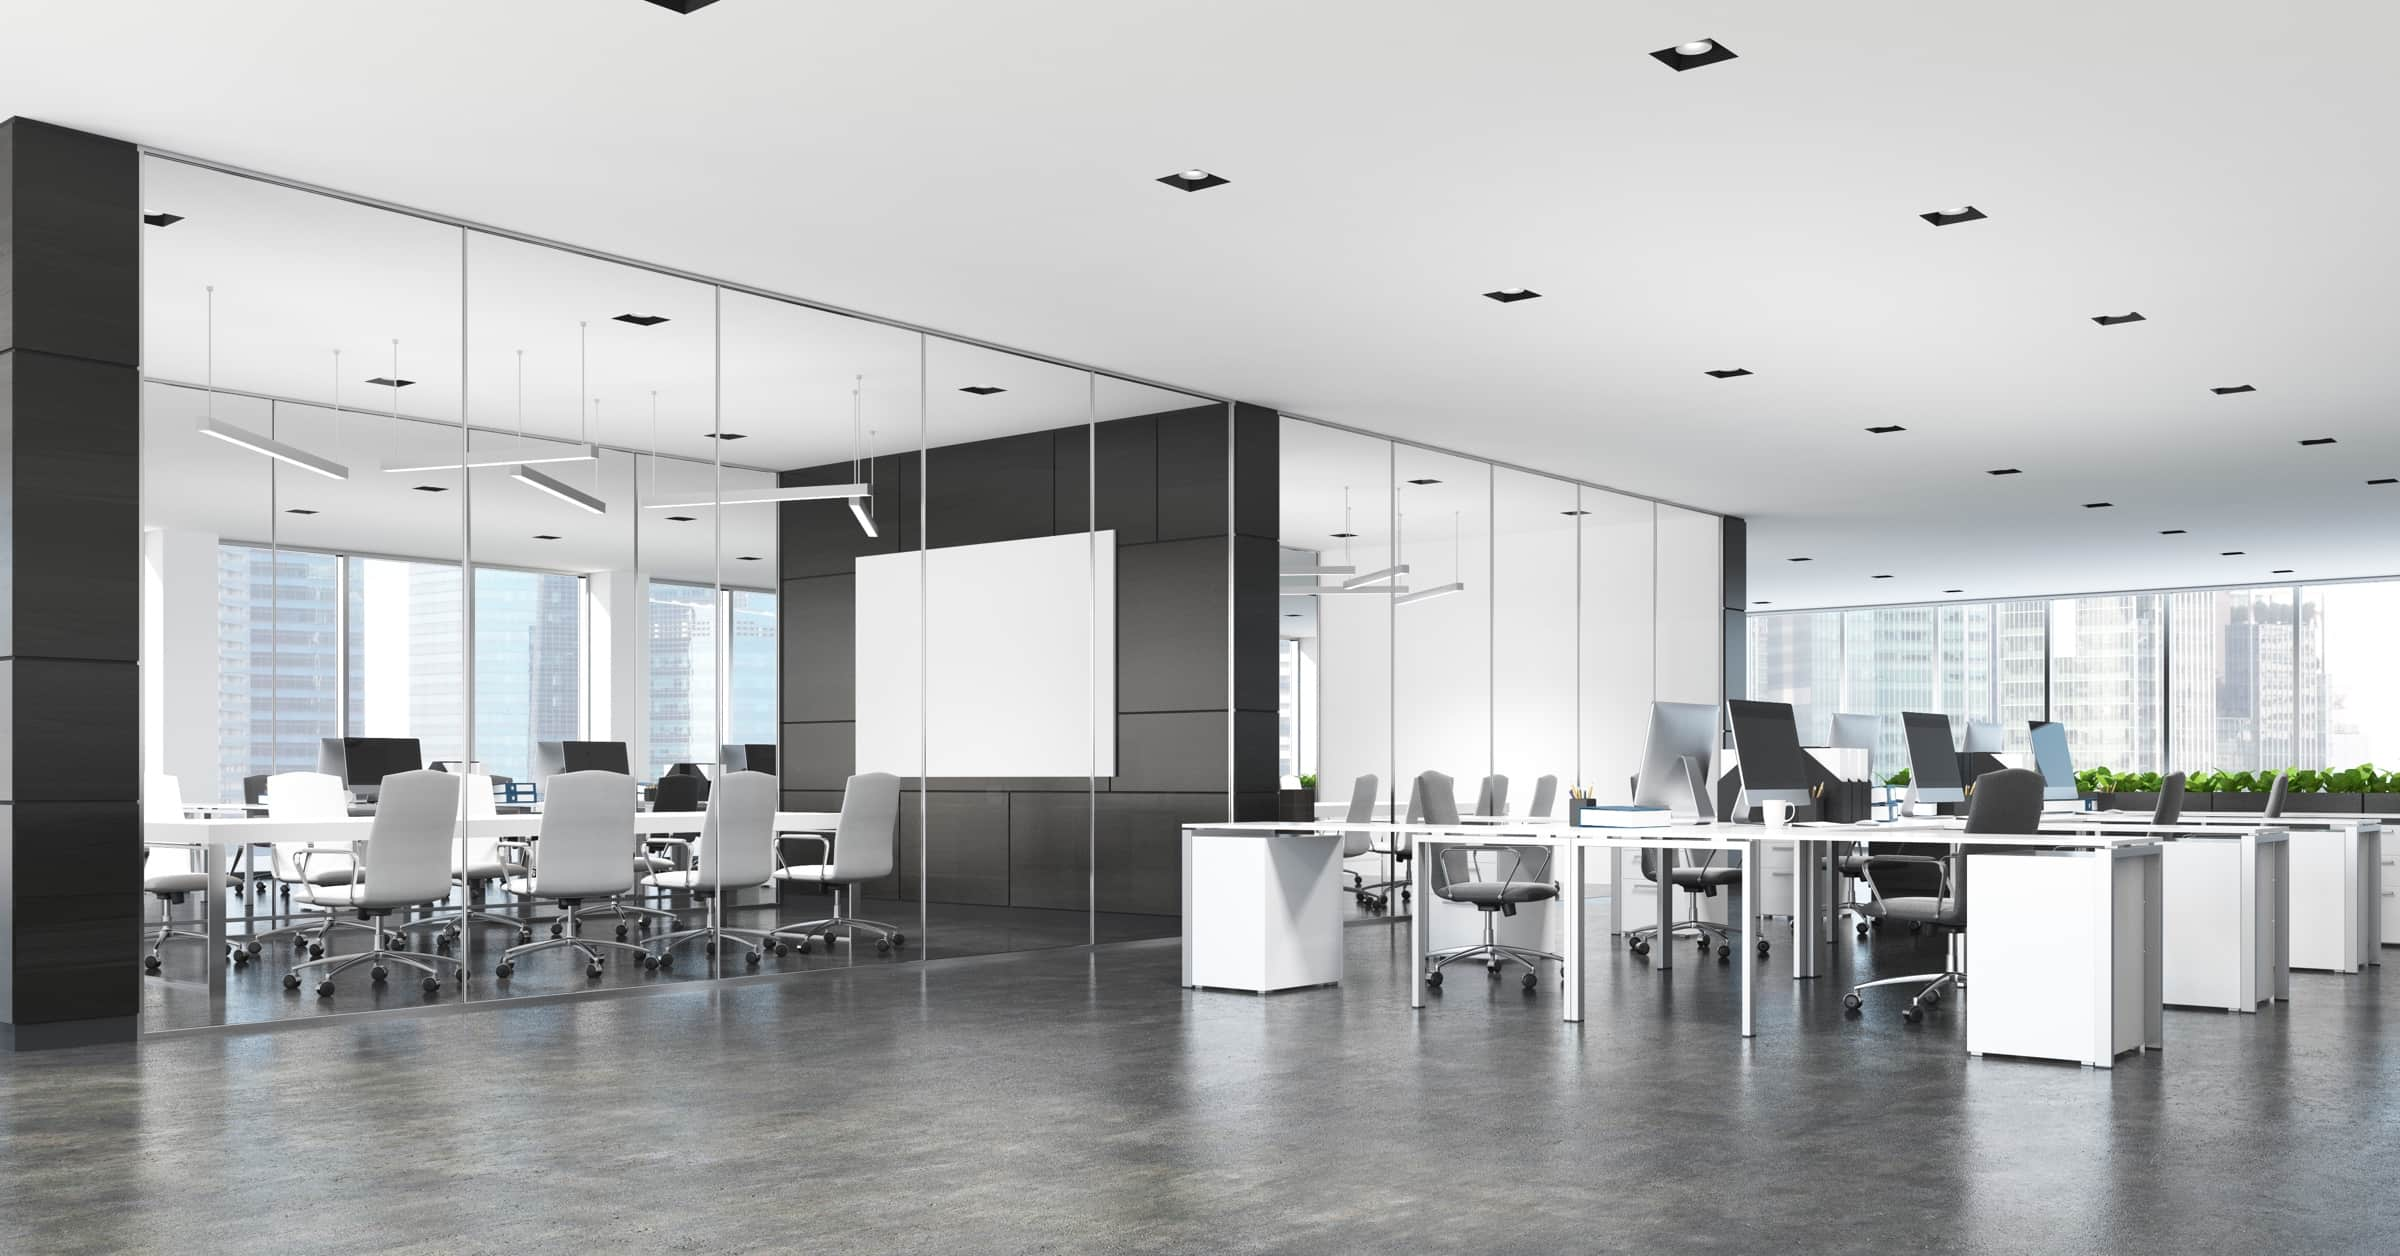 When creating or redesigning a conference room, take the opportunity to think beyond the bare necessities. Here are 7 tips to guide you to a room that enables productivity and inspires creativity.